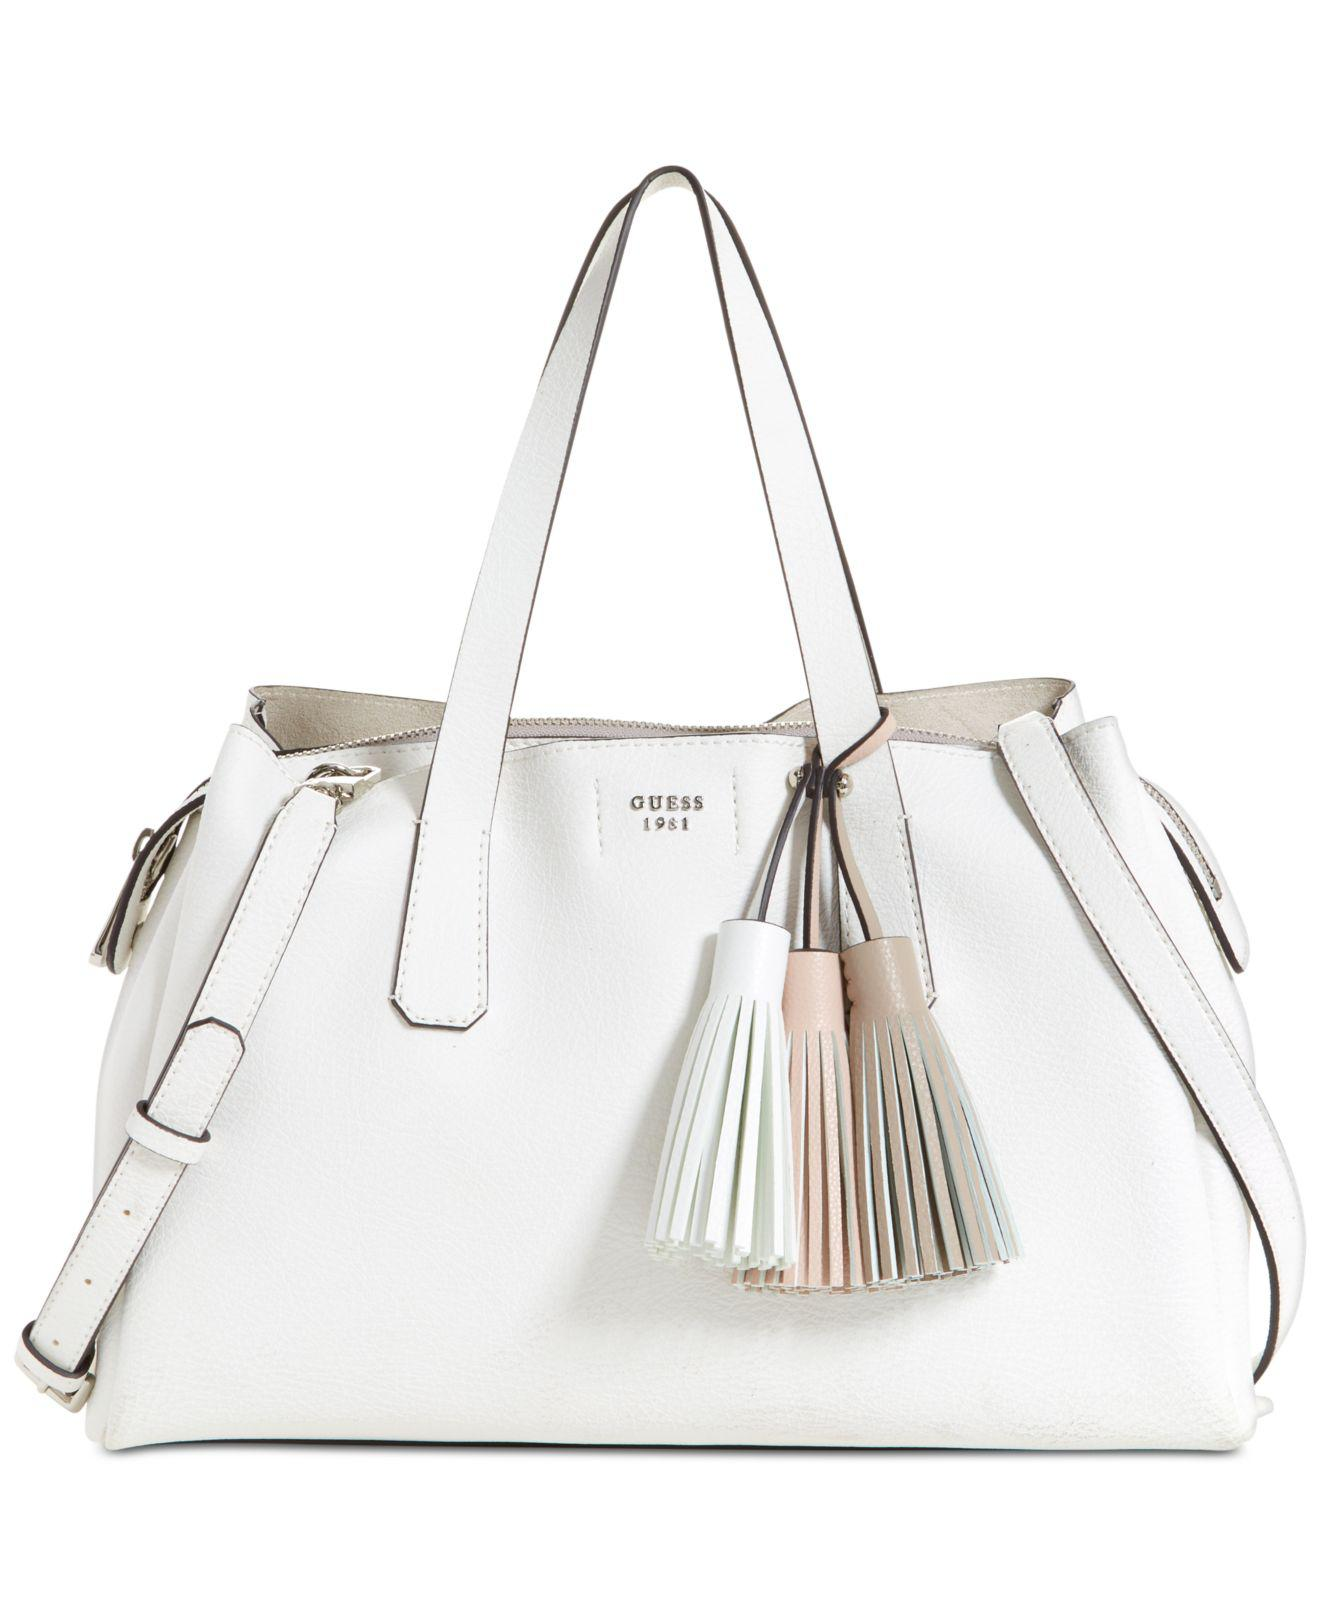 Lyst - Guess Trudy Girlfriend Satchel in White fd812f27fe886